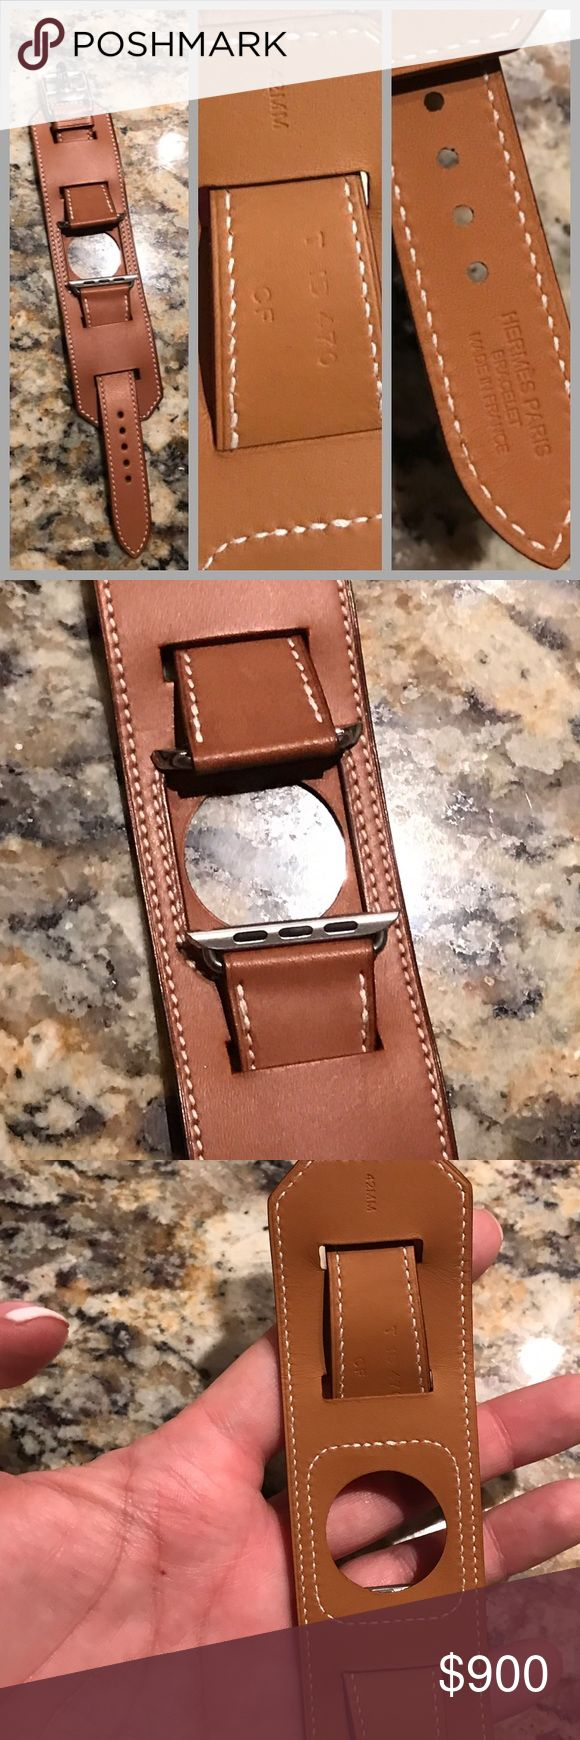 BRAND NEW HERMES RETIRED APPLE WATCH CUFF BRACELET BRAND NEW HERMES APPLE BAREINA FAUVE CUFF. BRAND NEW (BUCKLE STILL IN PLASTIC FROM HERMES) GUARANTEED AUTHENTIC. WORKS WITH APPLE WATCH 42MM GEN 1 OR GEN 2 APPLE. PLEASE NOTE WATCH NOT INCLUDED. BRAND NEW NEVER WORN AND GUARANTEED AUTHENTIC AS ALWAYS. PRICE FIRM NO TRADES IF I CANNOT SELL I WILL KEEP AS A BACKUP (I ALREADY HAVE 1) BEST APPLE WATCH STRAP EVER Hermes Accessories Watches